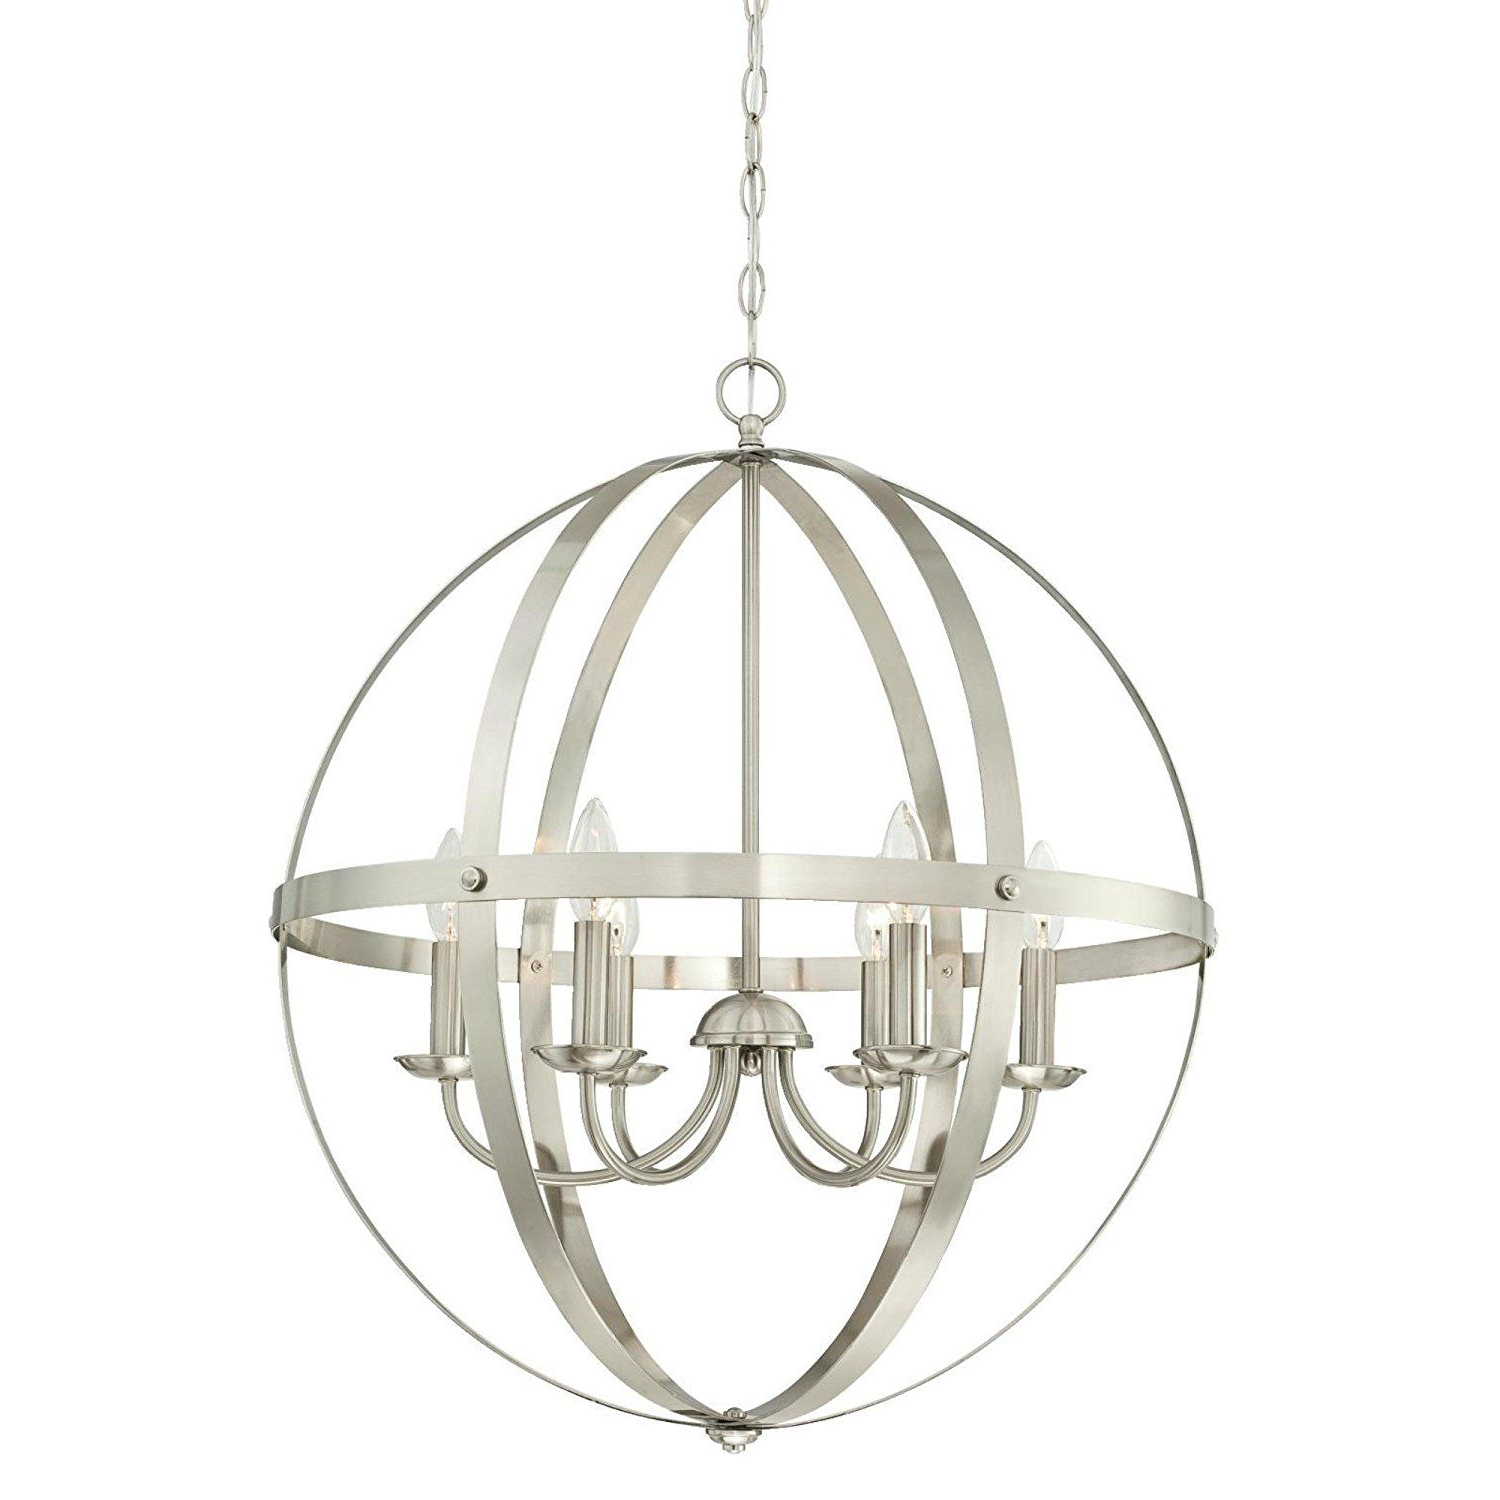 Open Cage Chandelier — Perfect For Vintage Inspired For Most Recently Released La Barge 3 Light Globe Chandeliers (View 10 of 25)